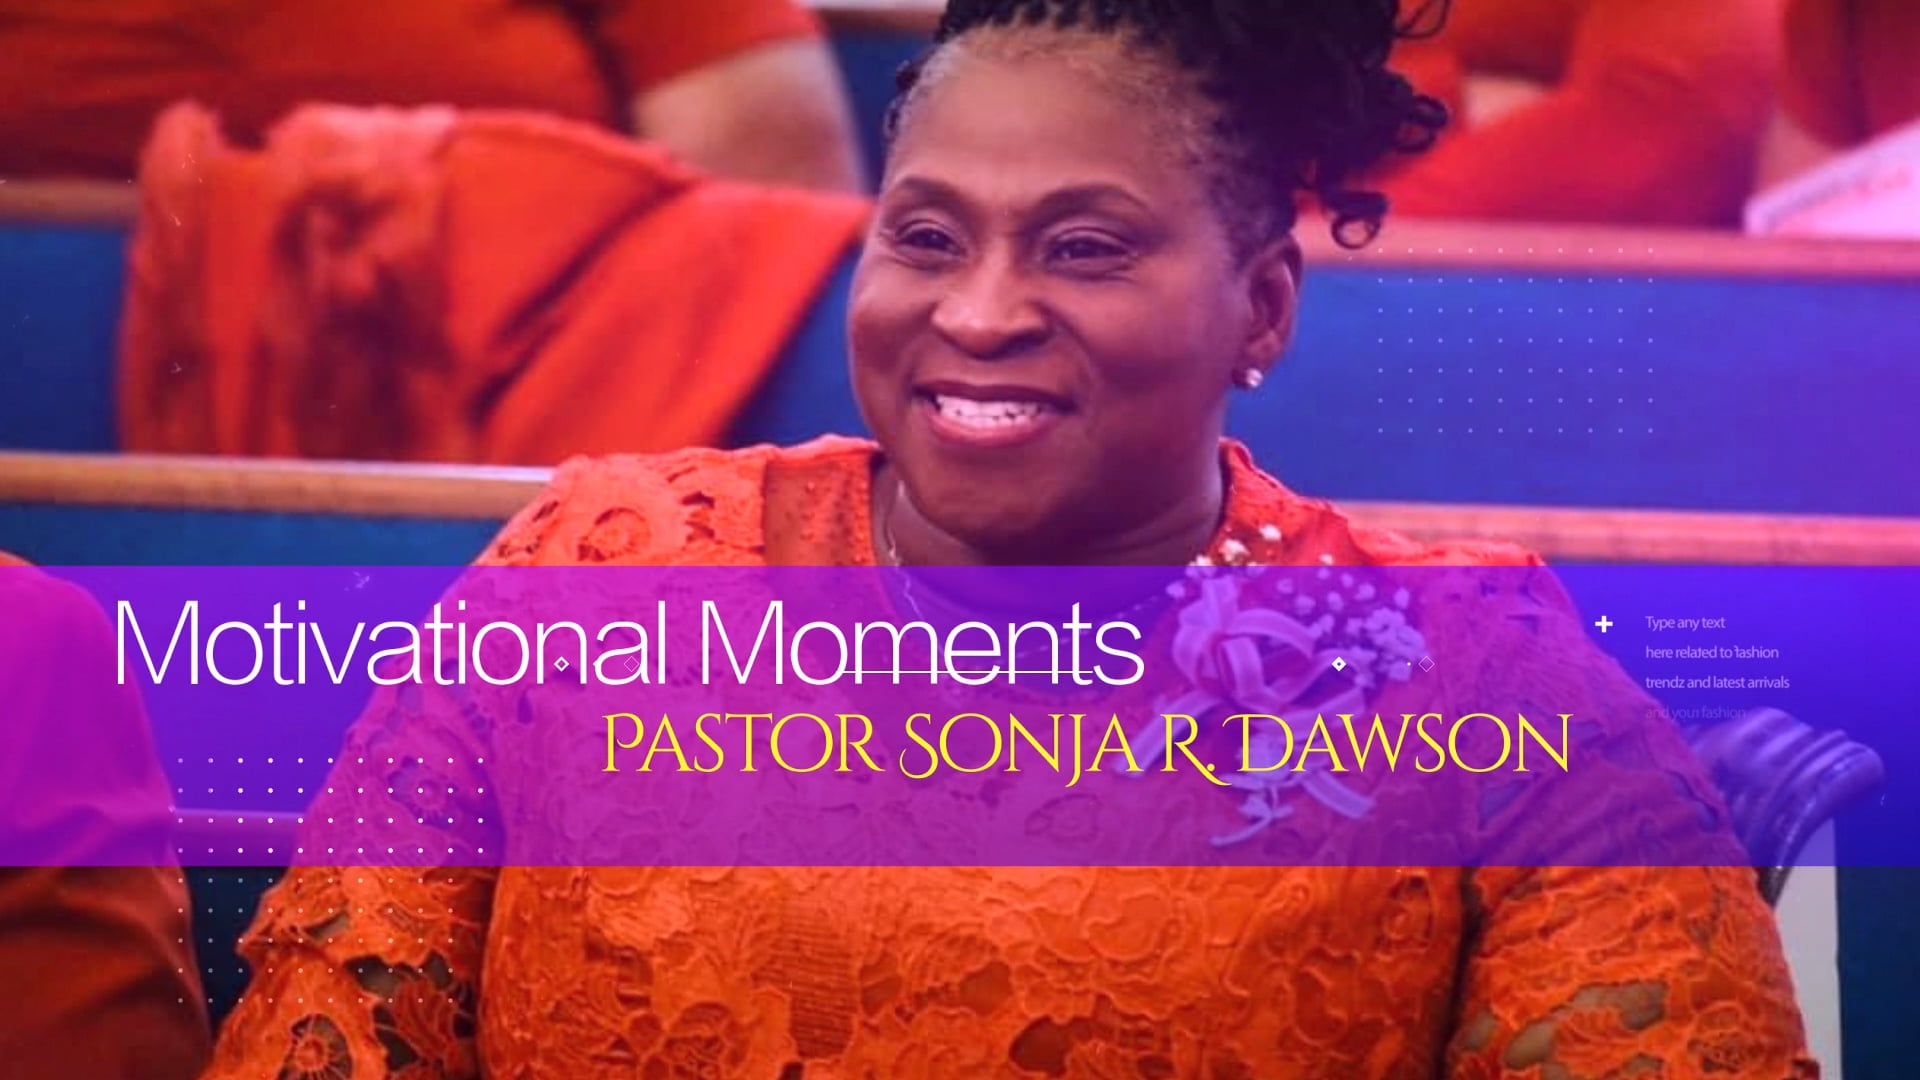 Motivational Moments with Pastor Sonja R. Dawson: Ep.1